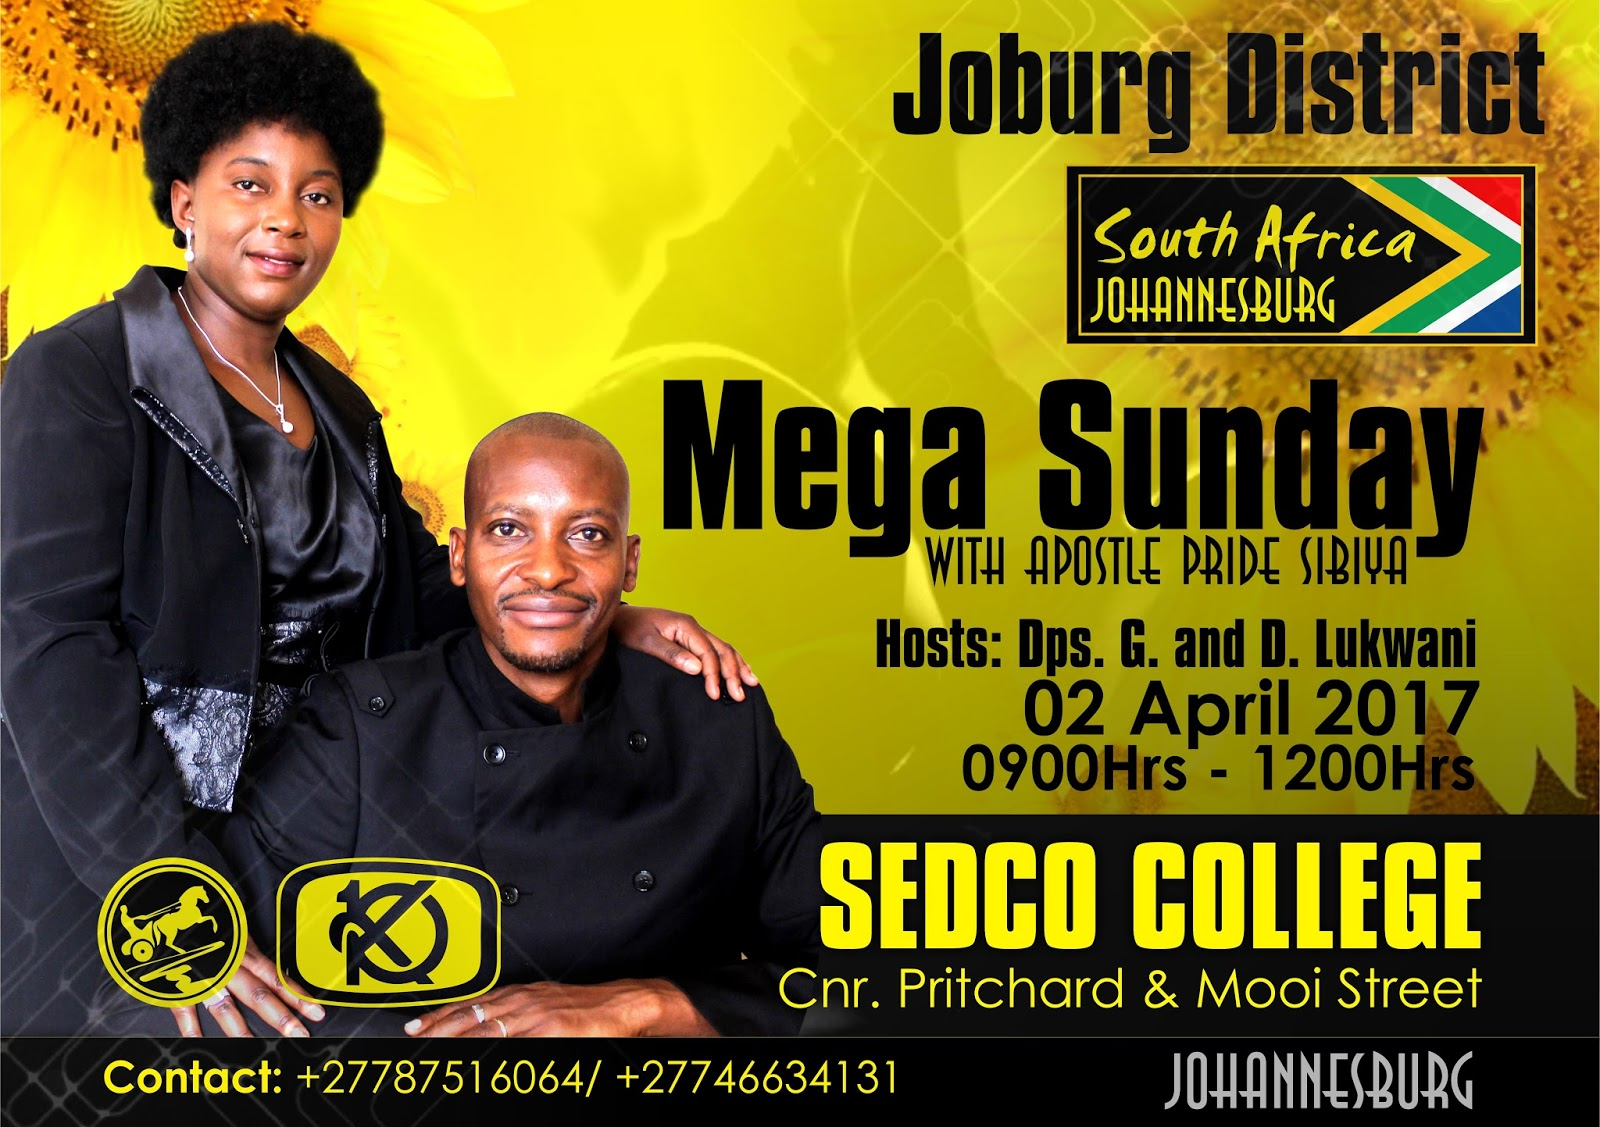 Apostle Pride Sibiya Will Be Ministering In Rustenburg and Johannesburg - South Africa Back To God